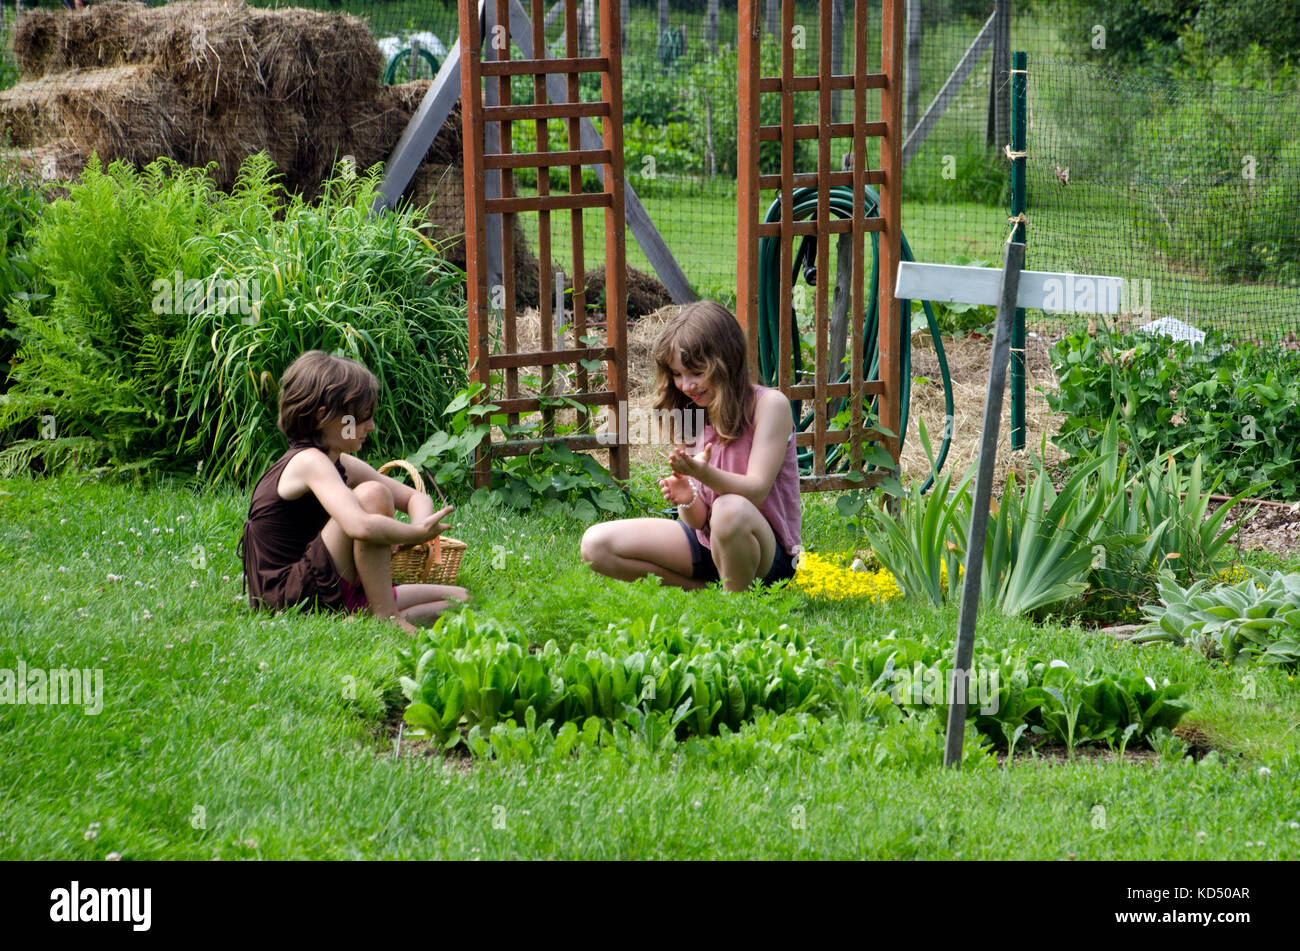 Two girls working in community garden for camp, Yarmouth Maine, USA - Stock Image